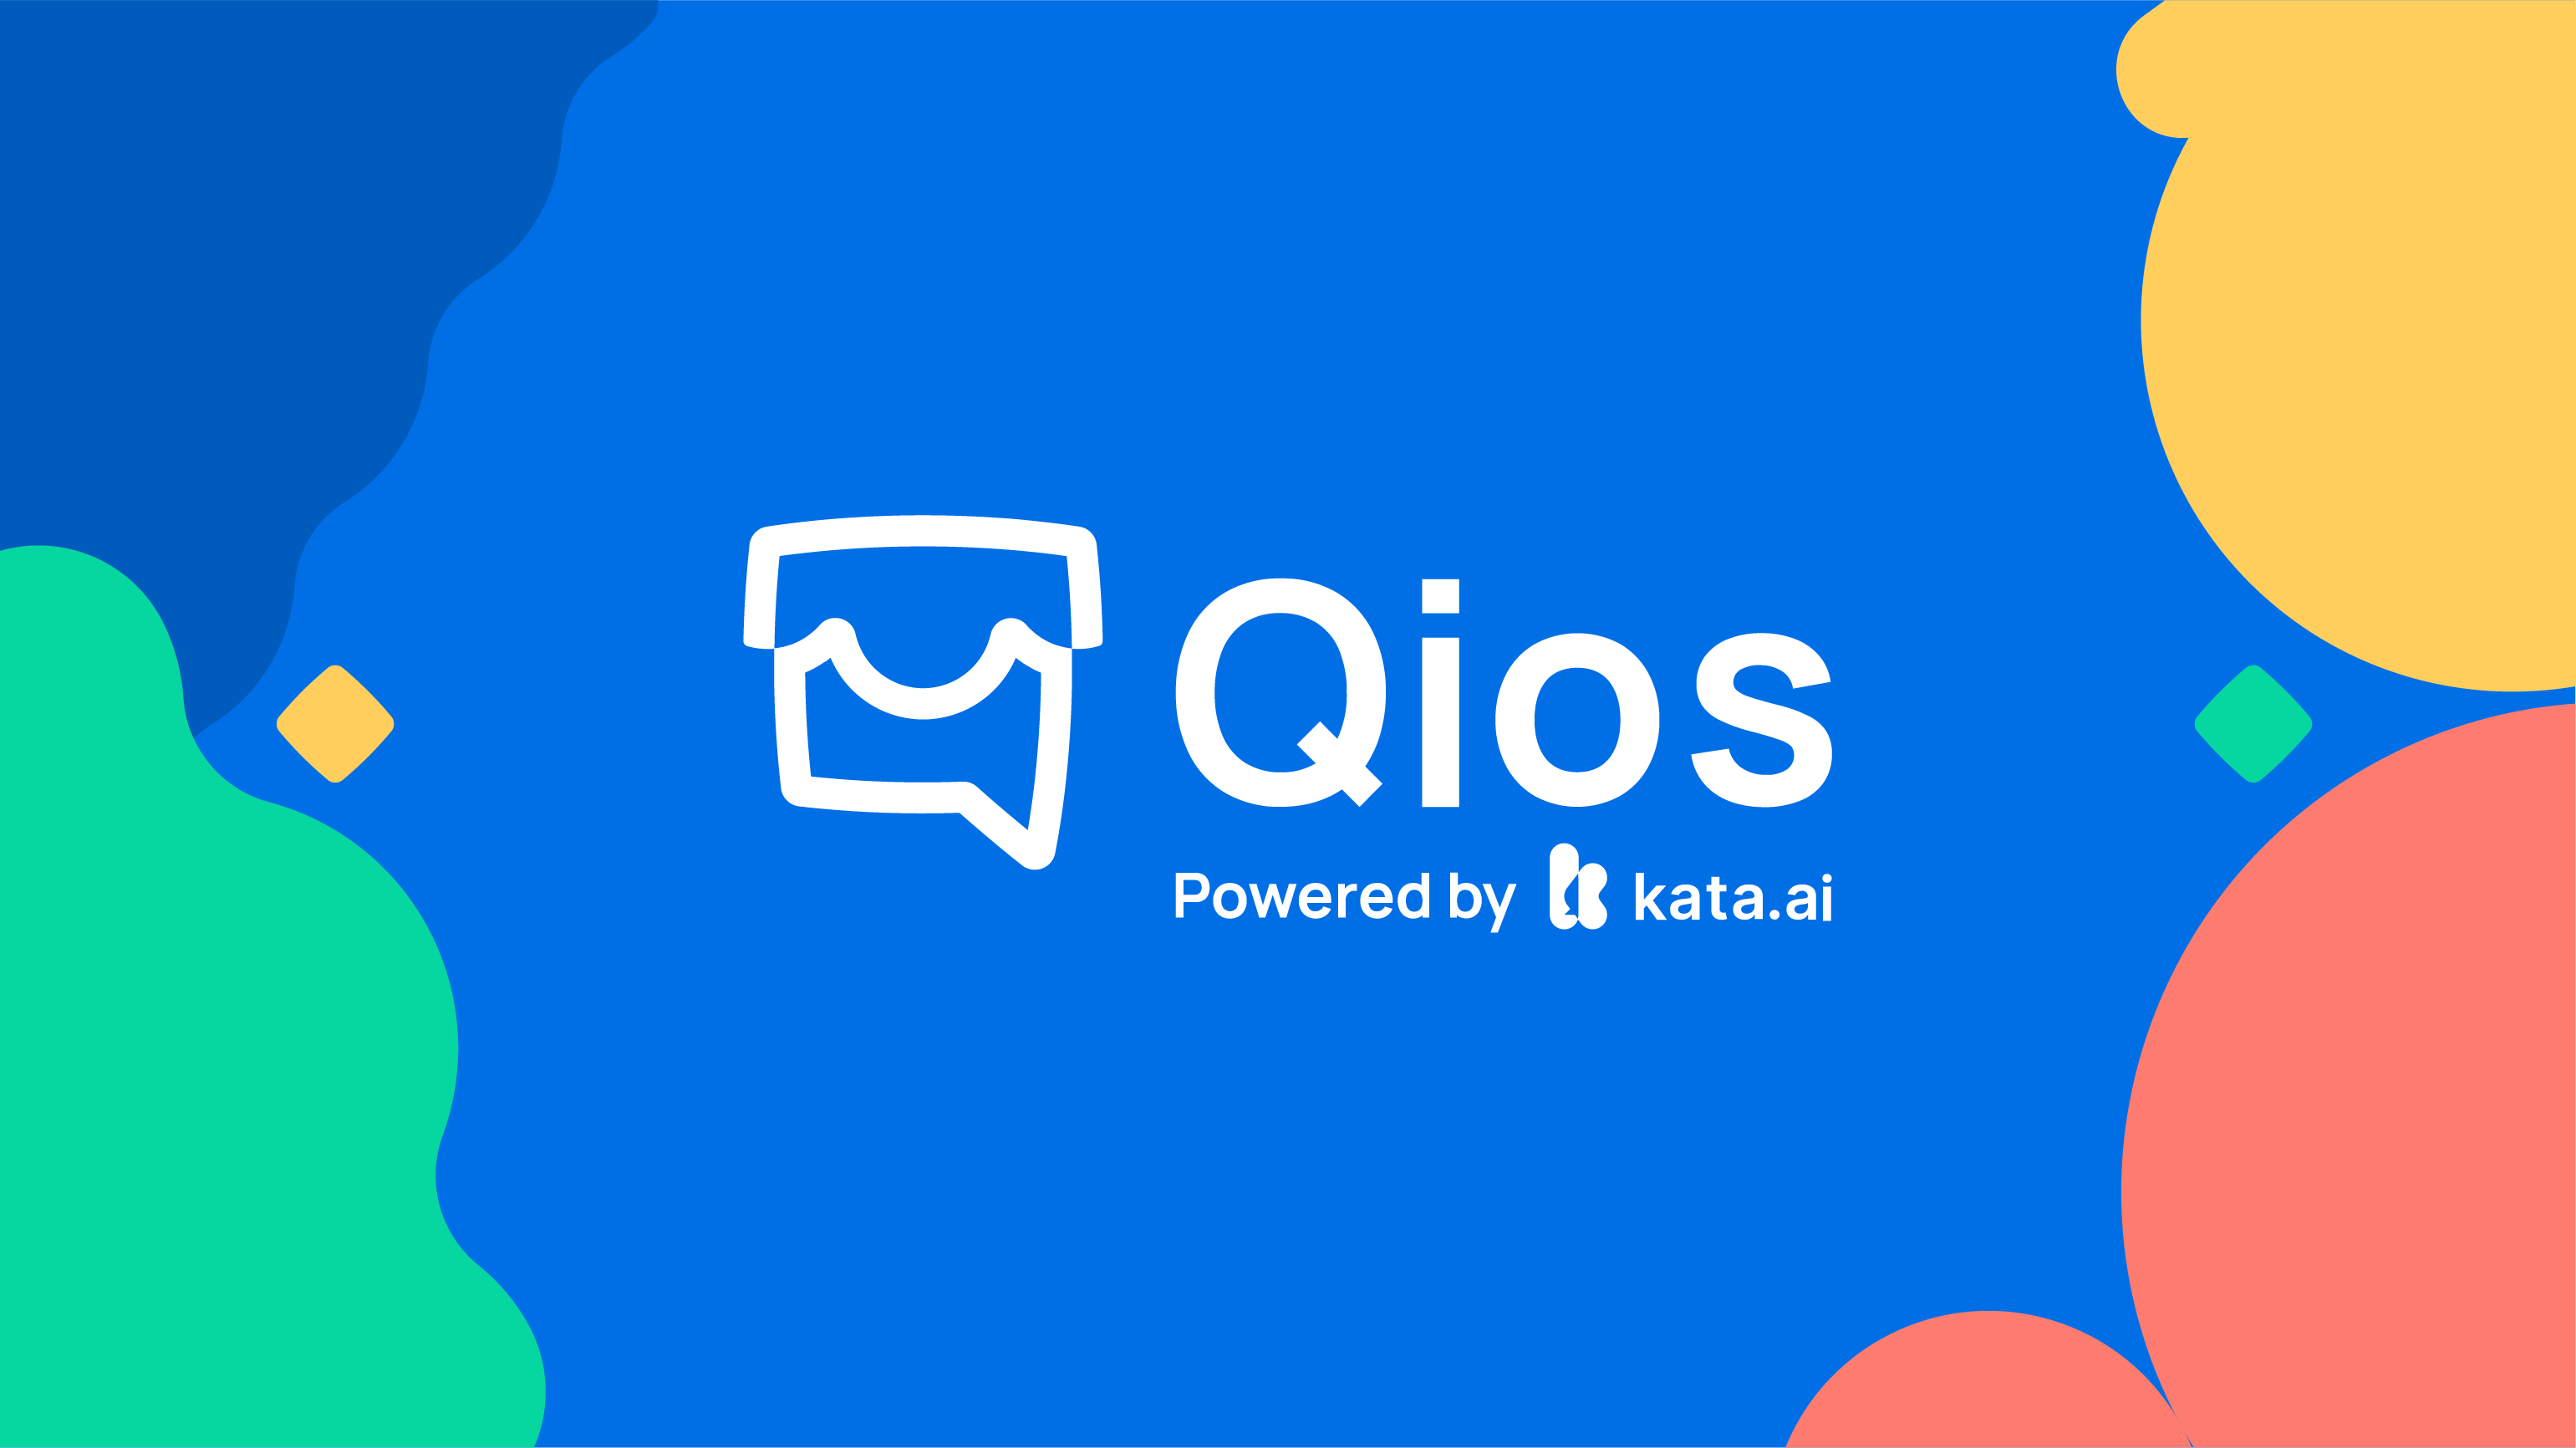 Introduced at the INTERACT 2020 event, the Qios chat commerce platform will help small and medium enterprises sell their products easier online with the power of automation.